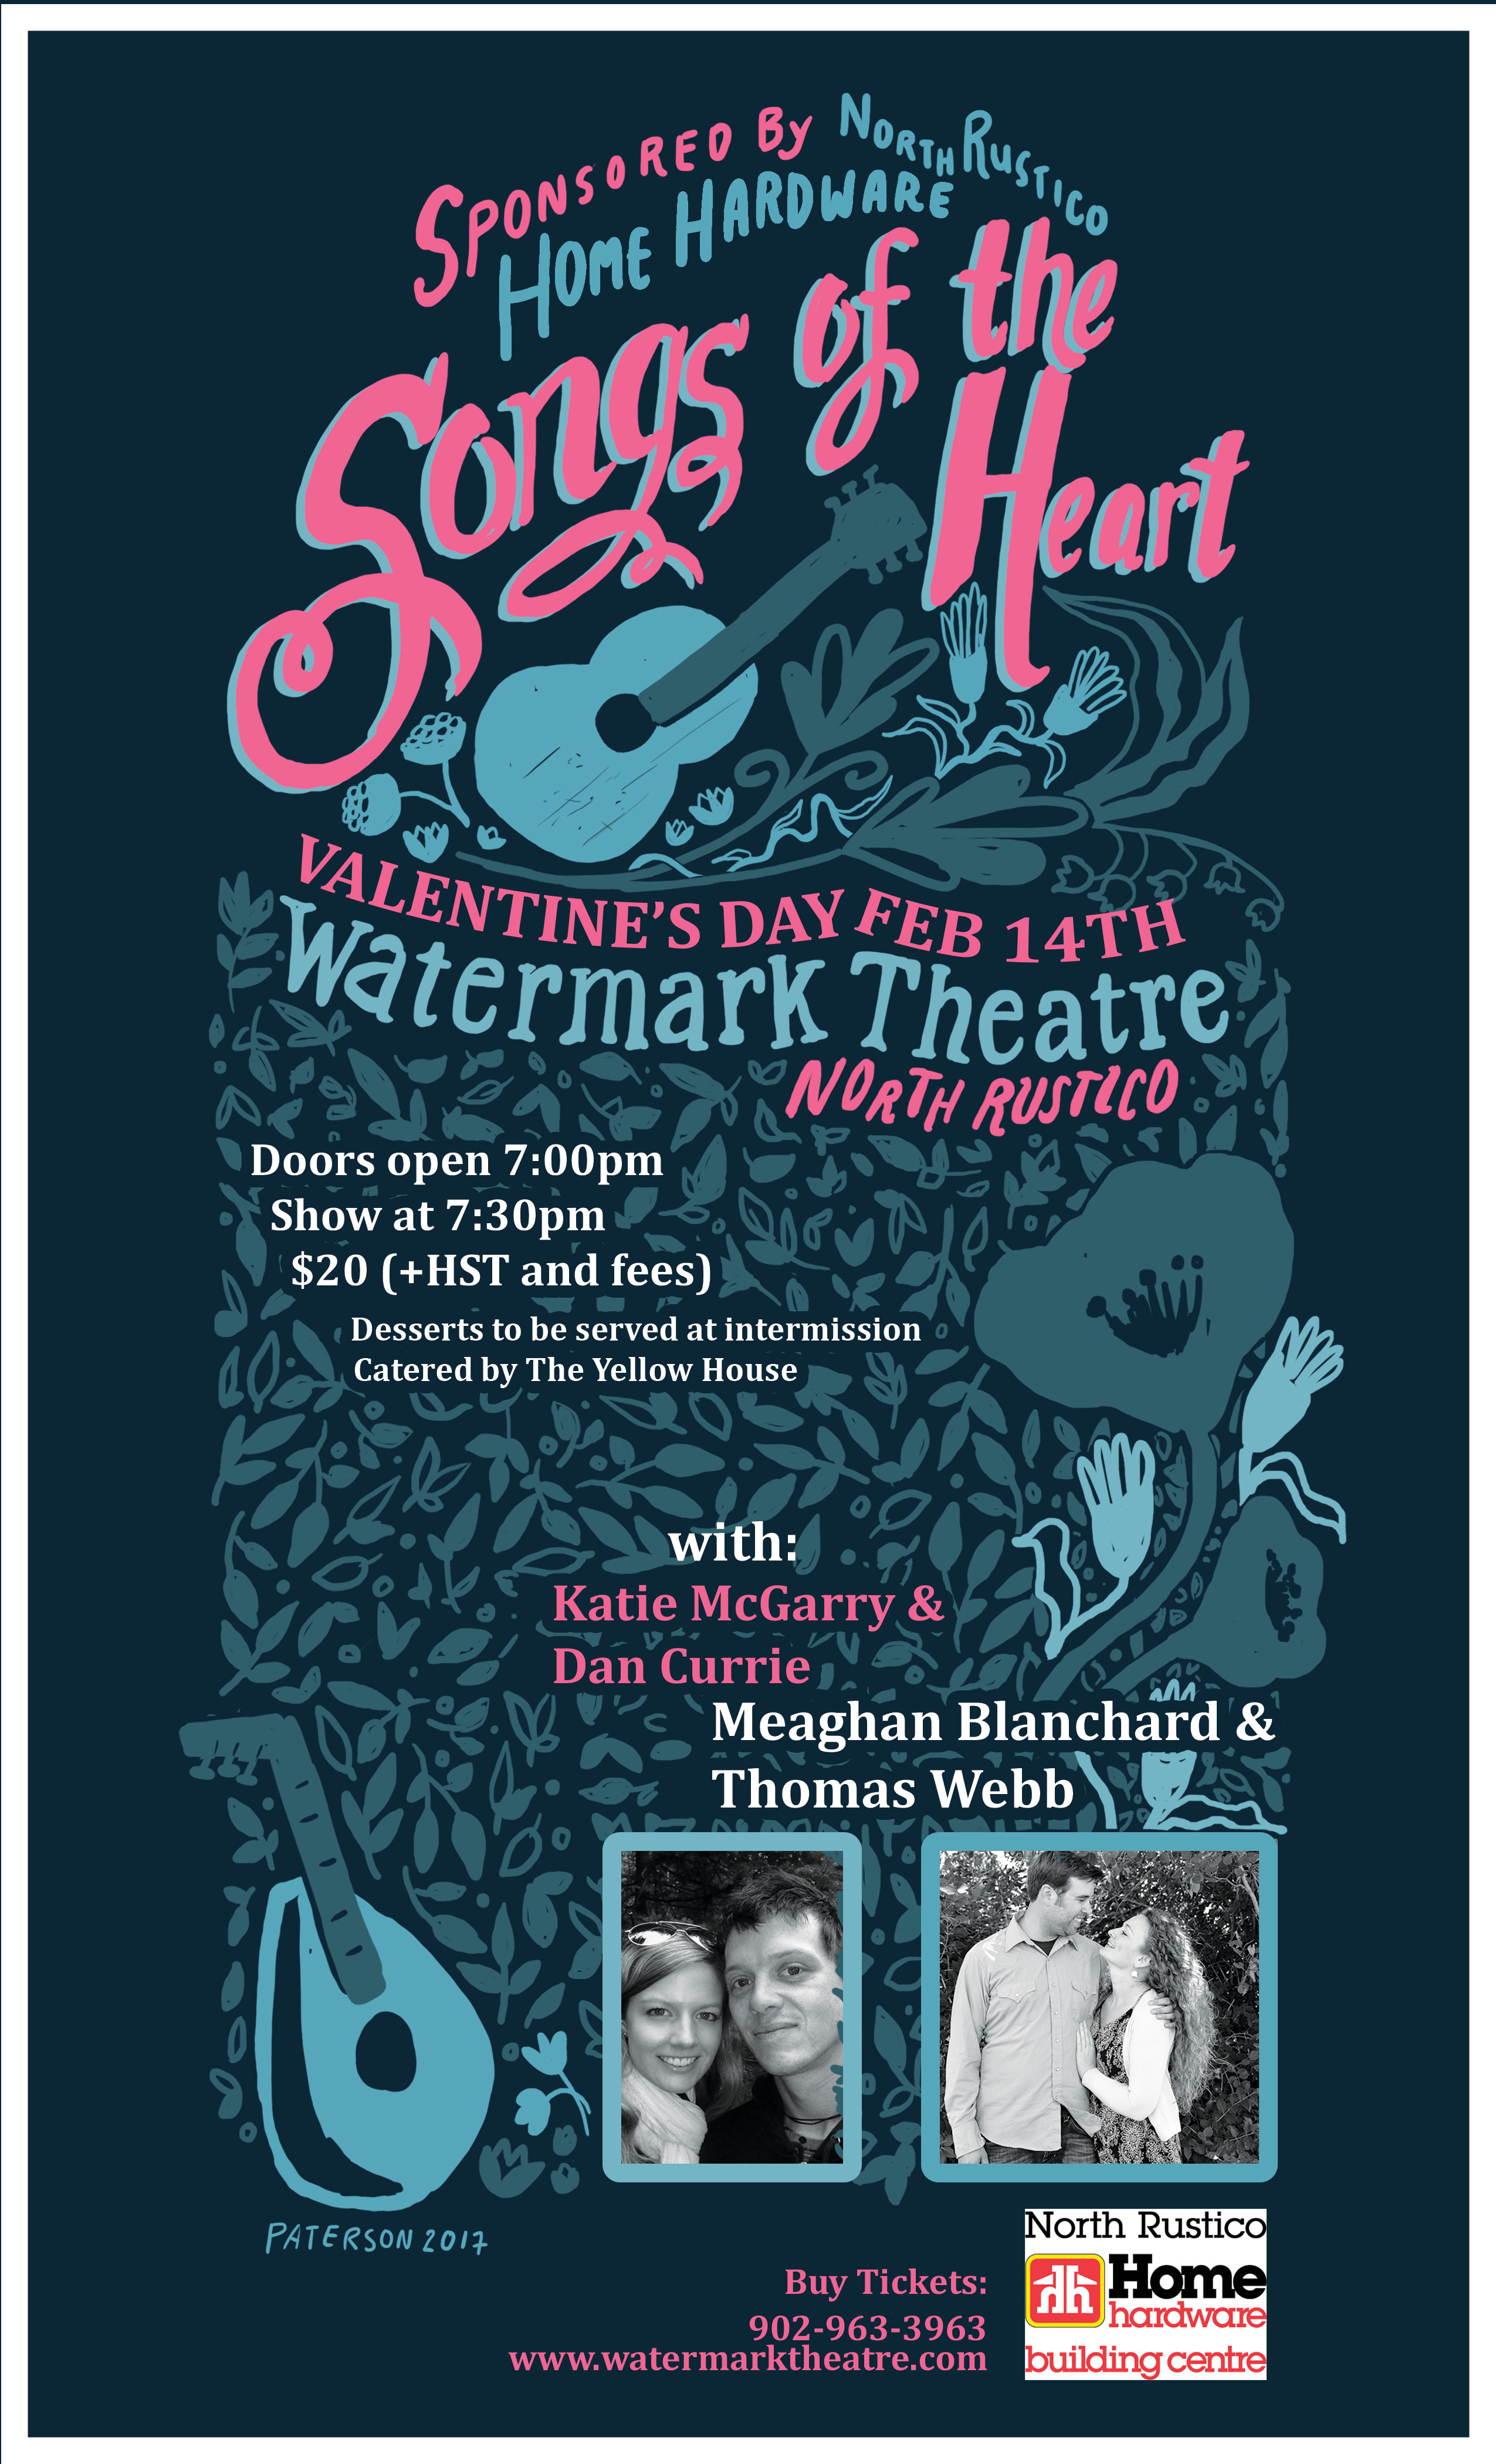 Songs of the Heart Valentine's Day Concert @ Watermark Theatre | North Rustico | Prince Edward Island | Canada